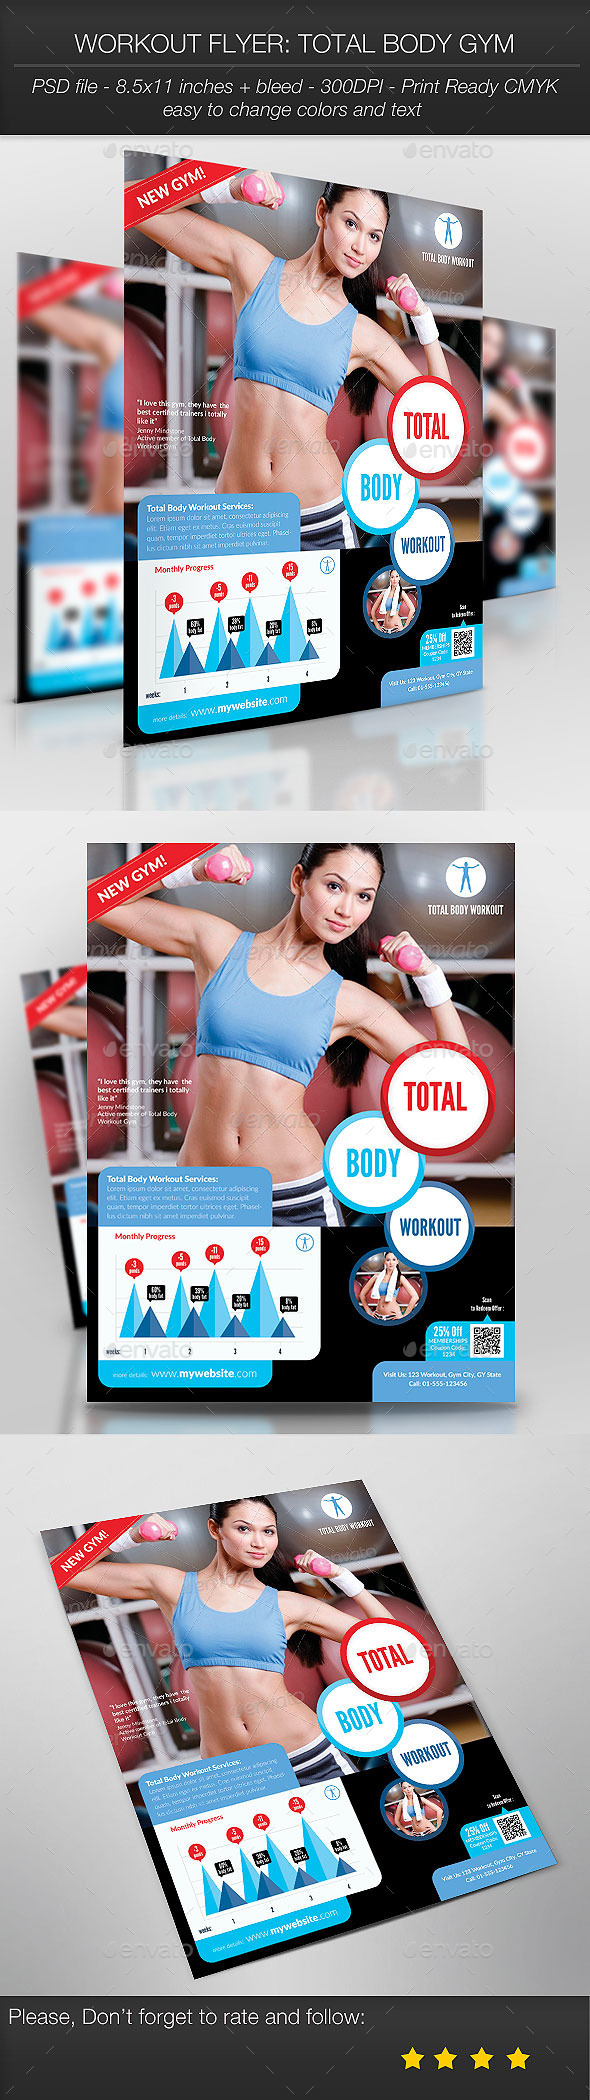 Workout Flyer: Total Body Gym